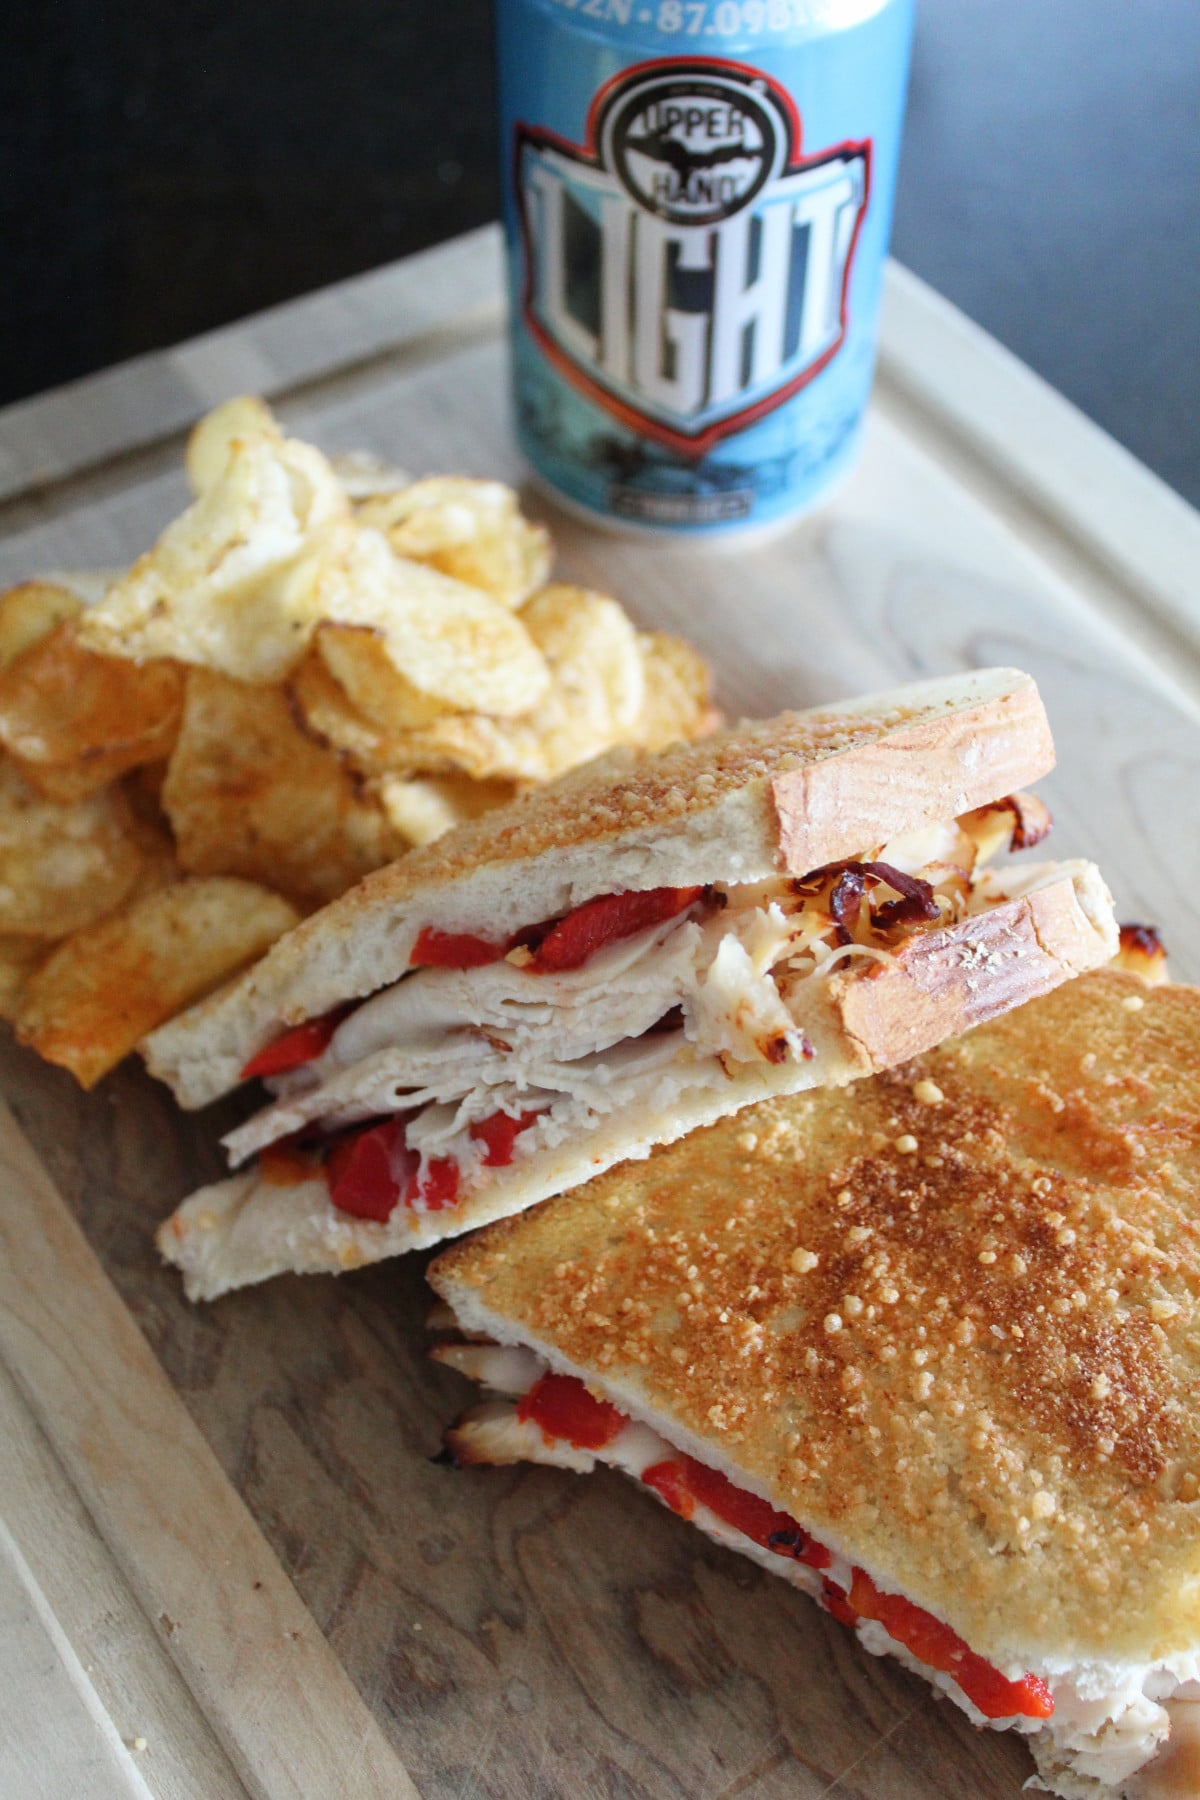 A roasted pepper turkey sandwich cut in half ready to eat with a craft beer in the background.